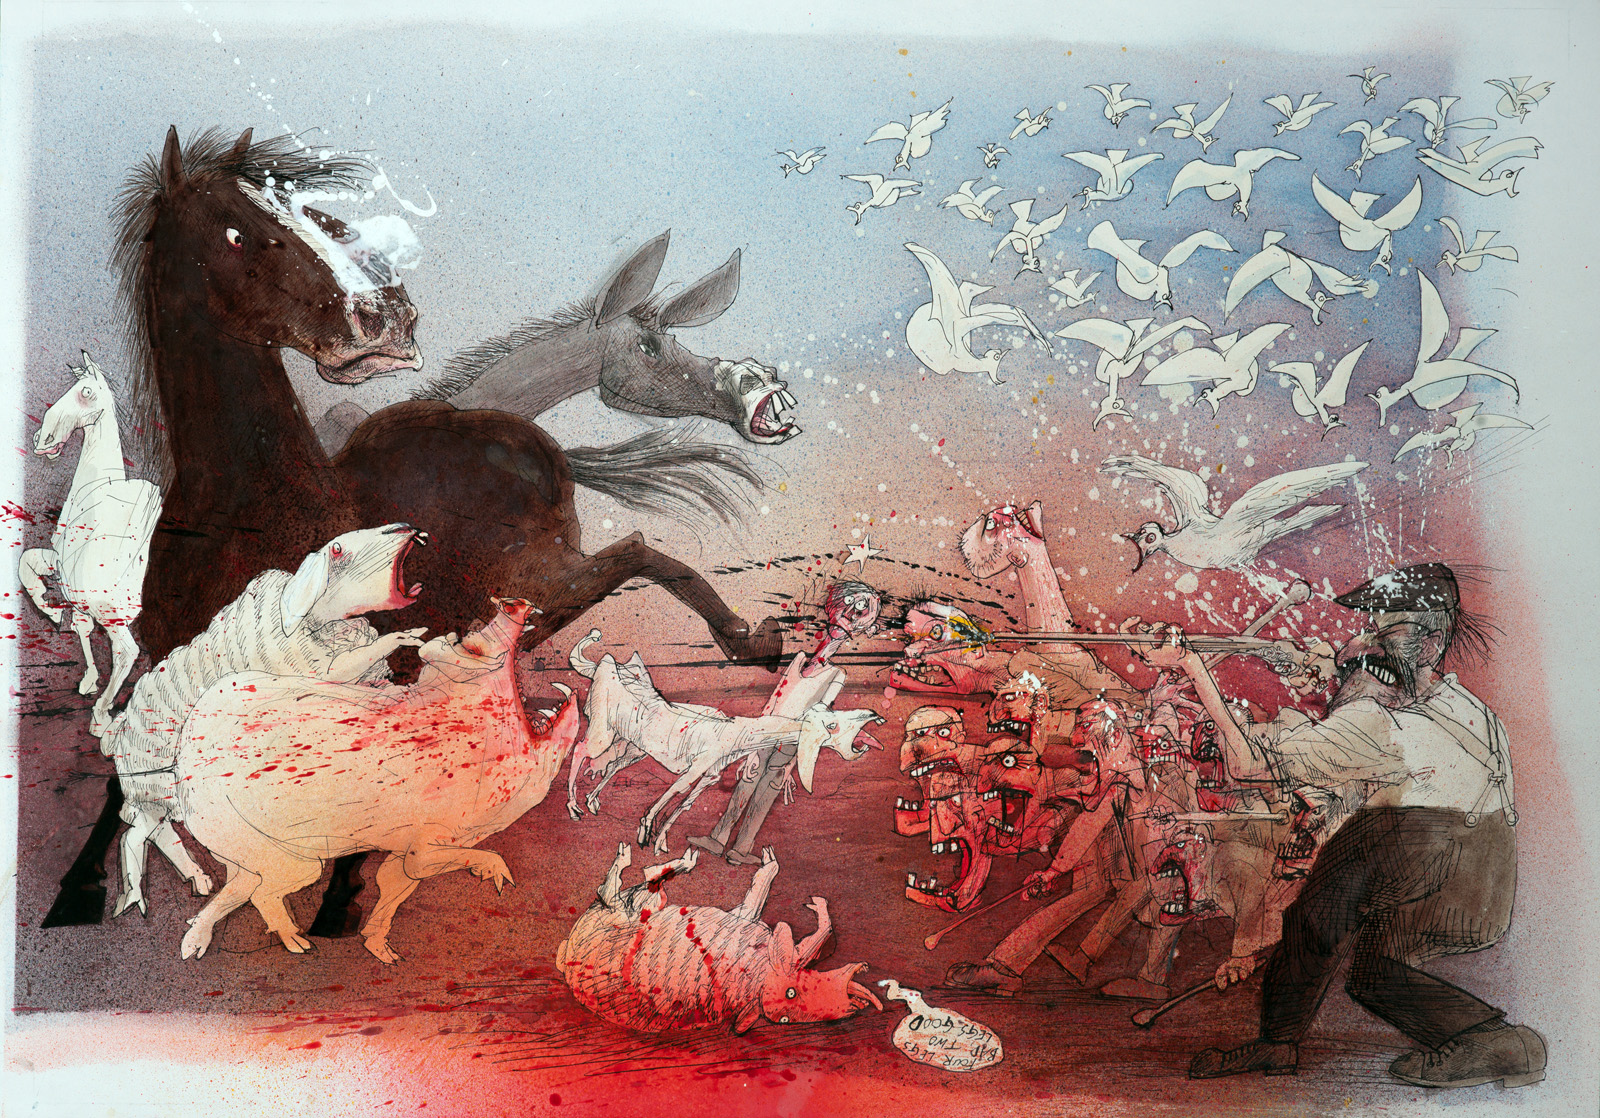 Illustration from Ralph Steadman's iversion of George Orwell's Animal Farm